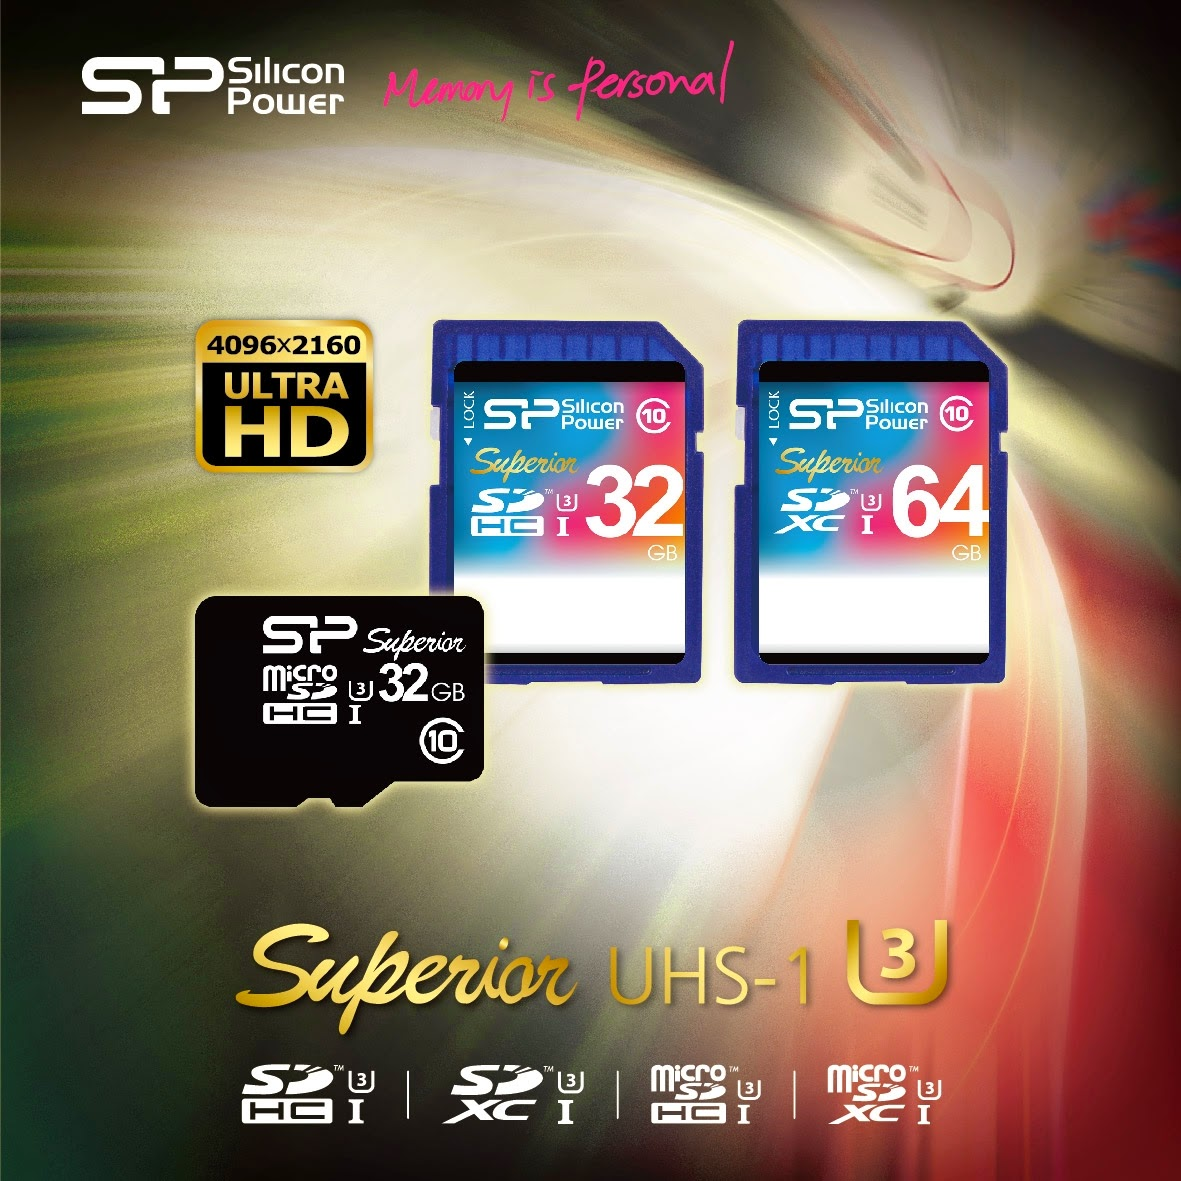 Silicon Power Superior UHS-1 (U3) SDHC/SDXC and microSDHC flash card